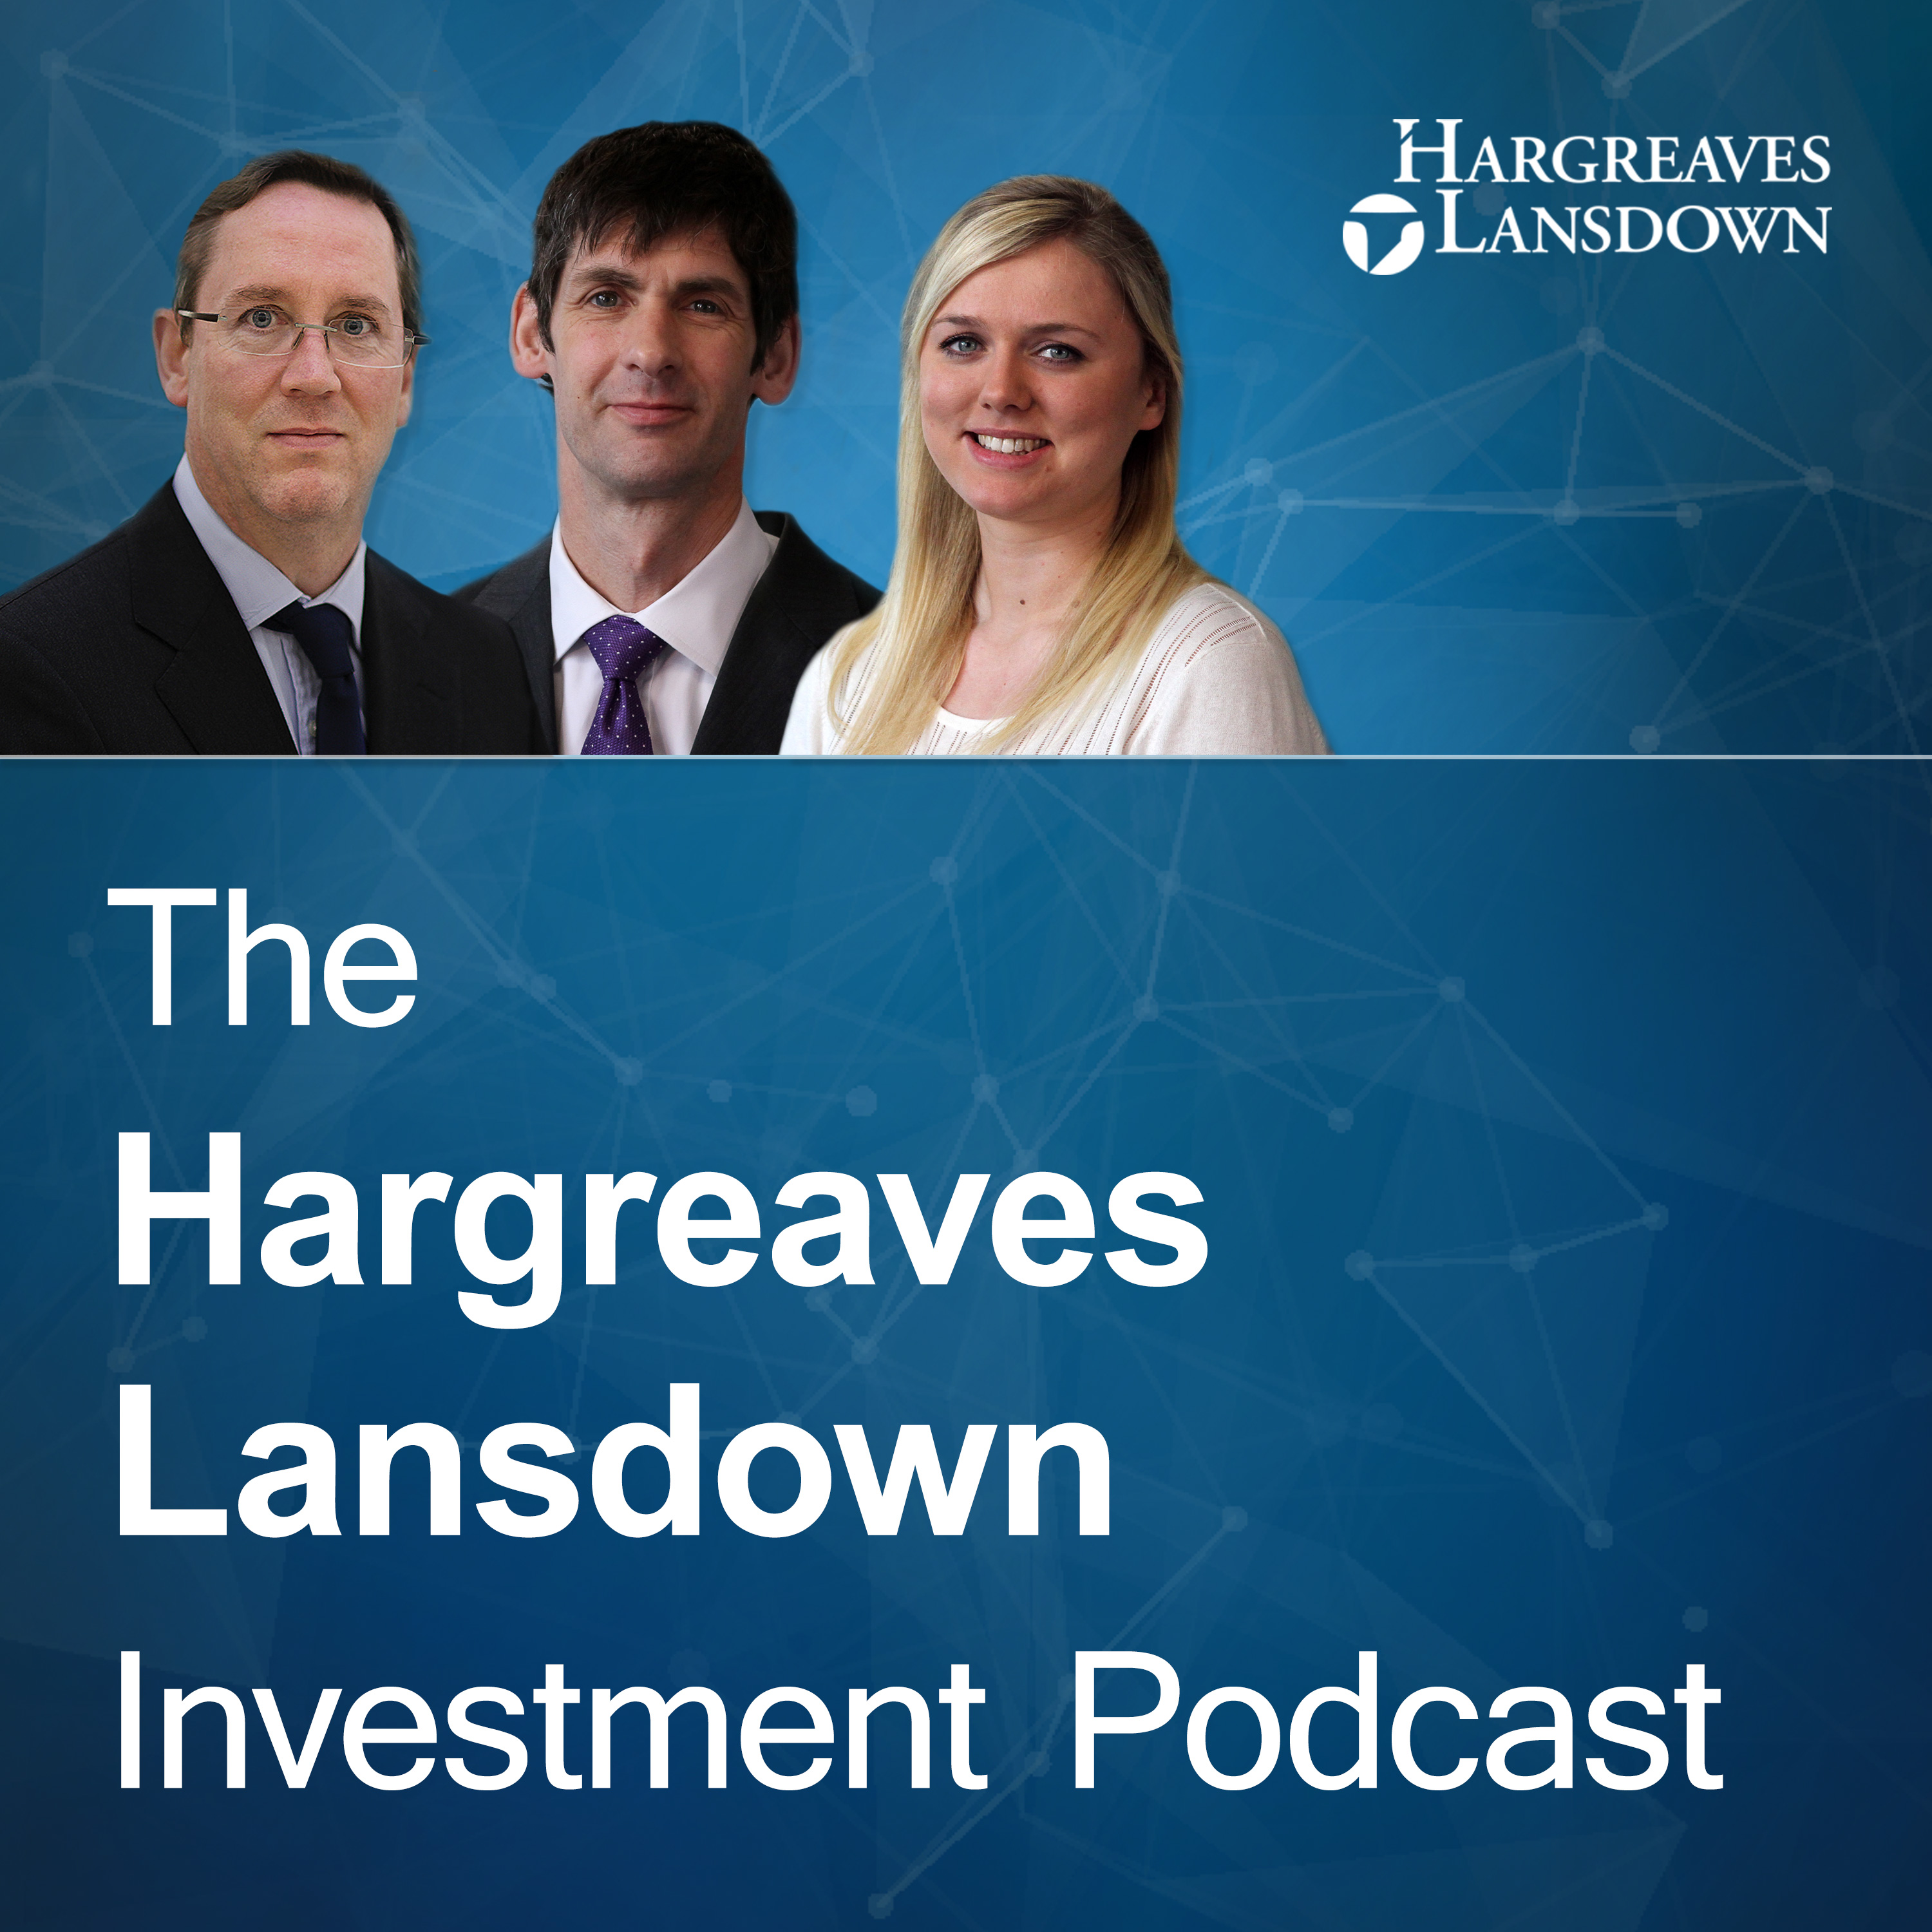 Hargreaves Lansdown Investment Podcast